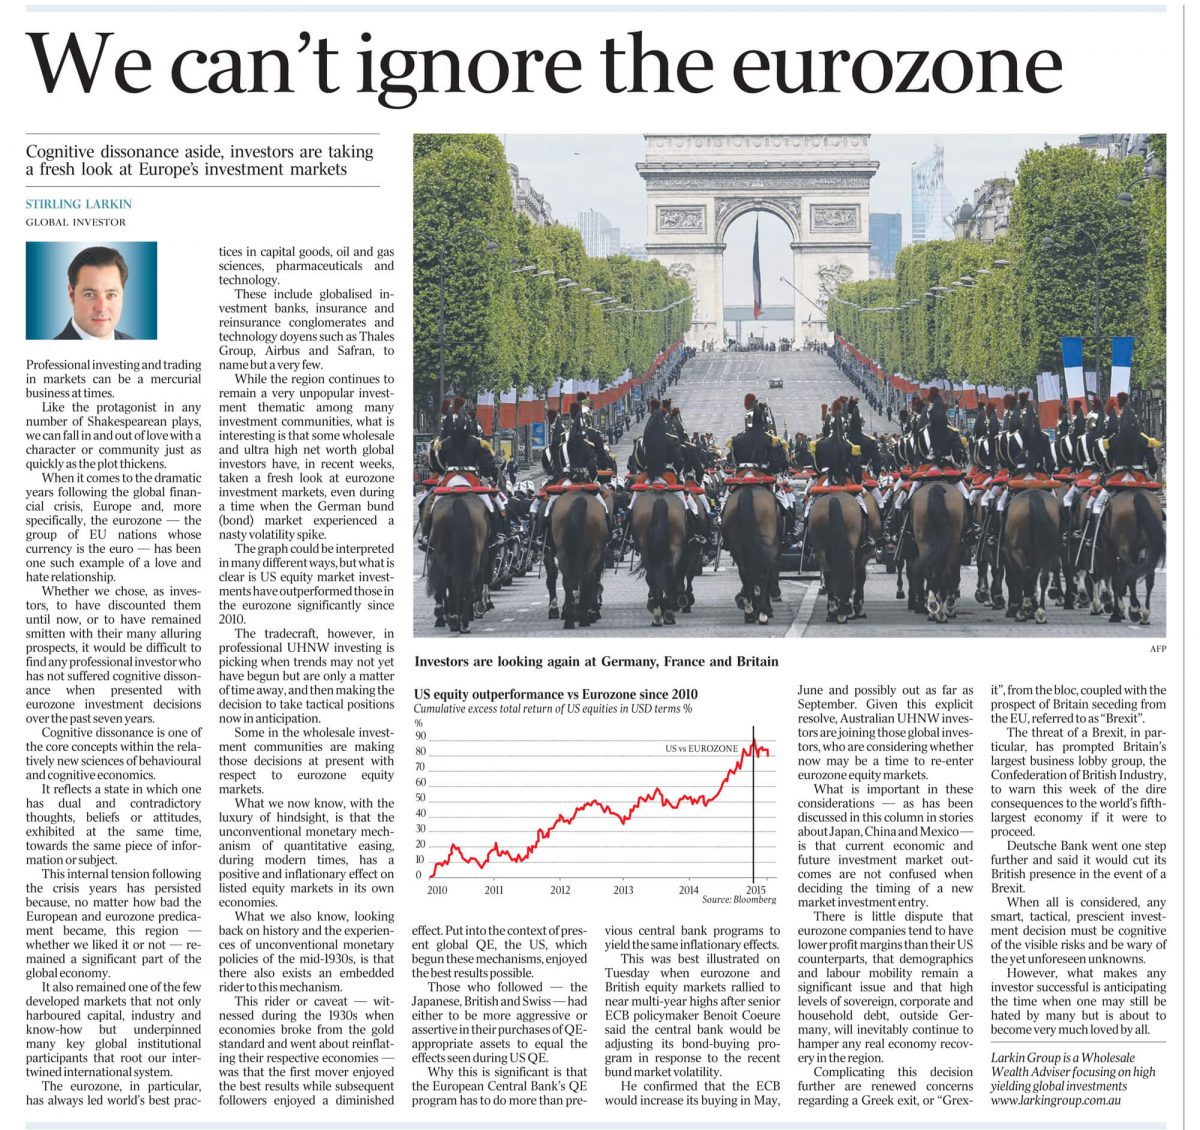 australian standfirst discusses eurozone in 2015 in the australian newspaper